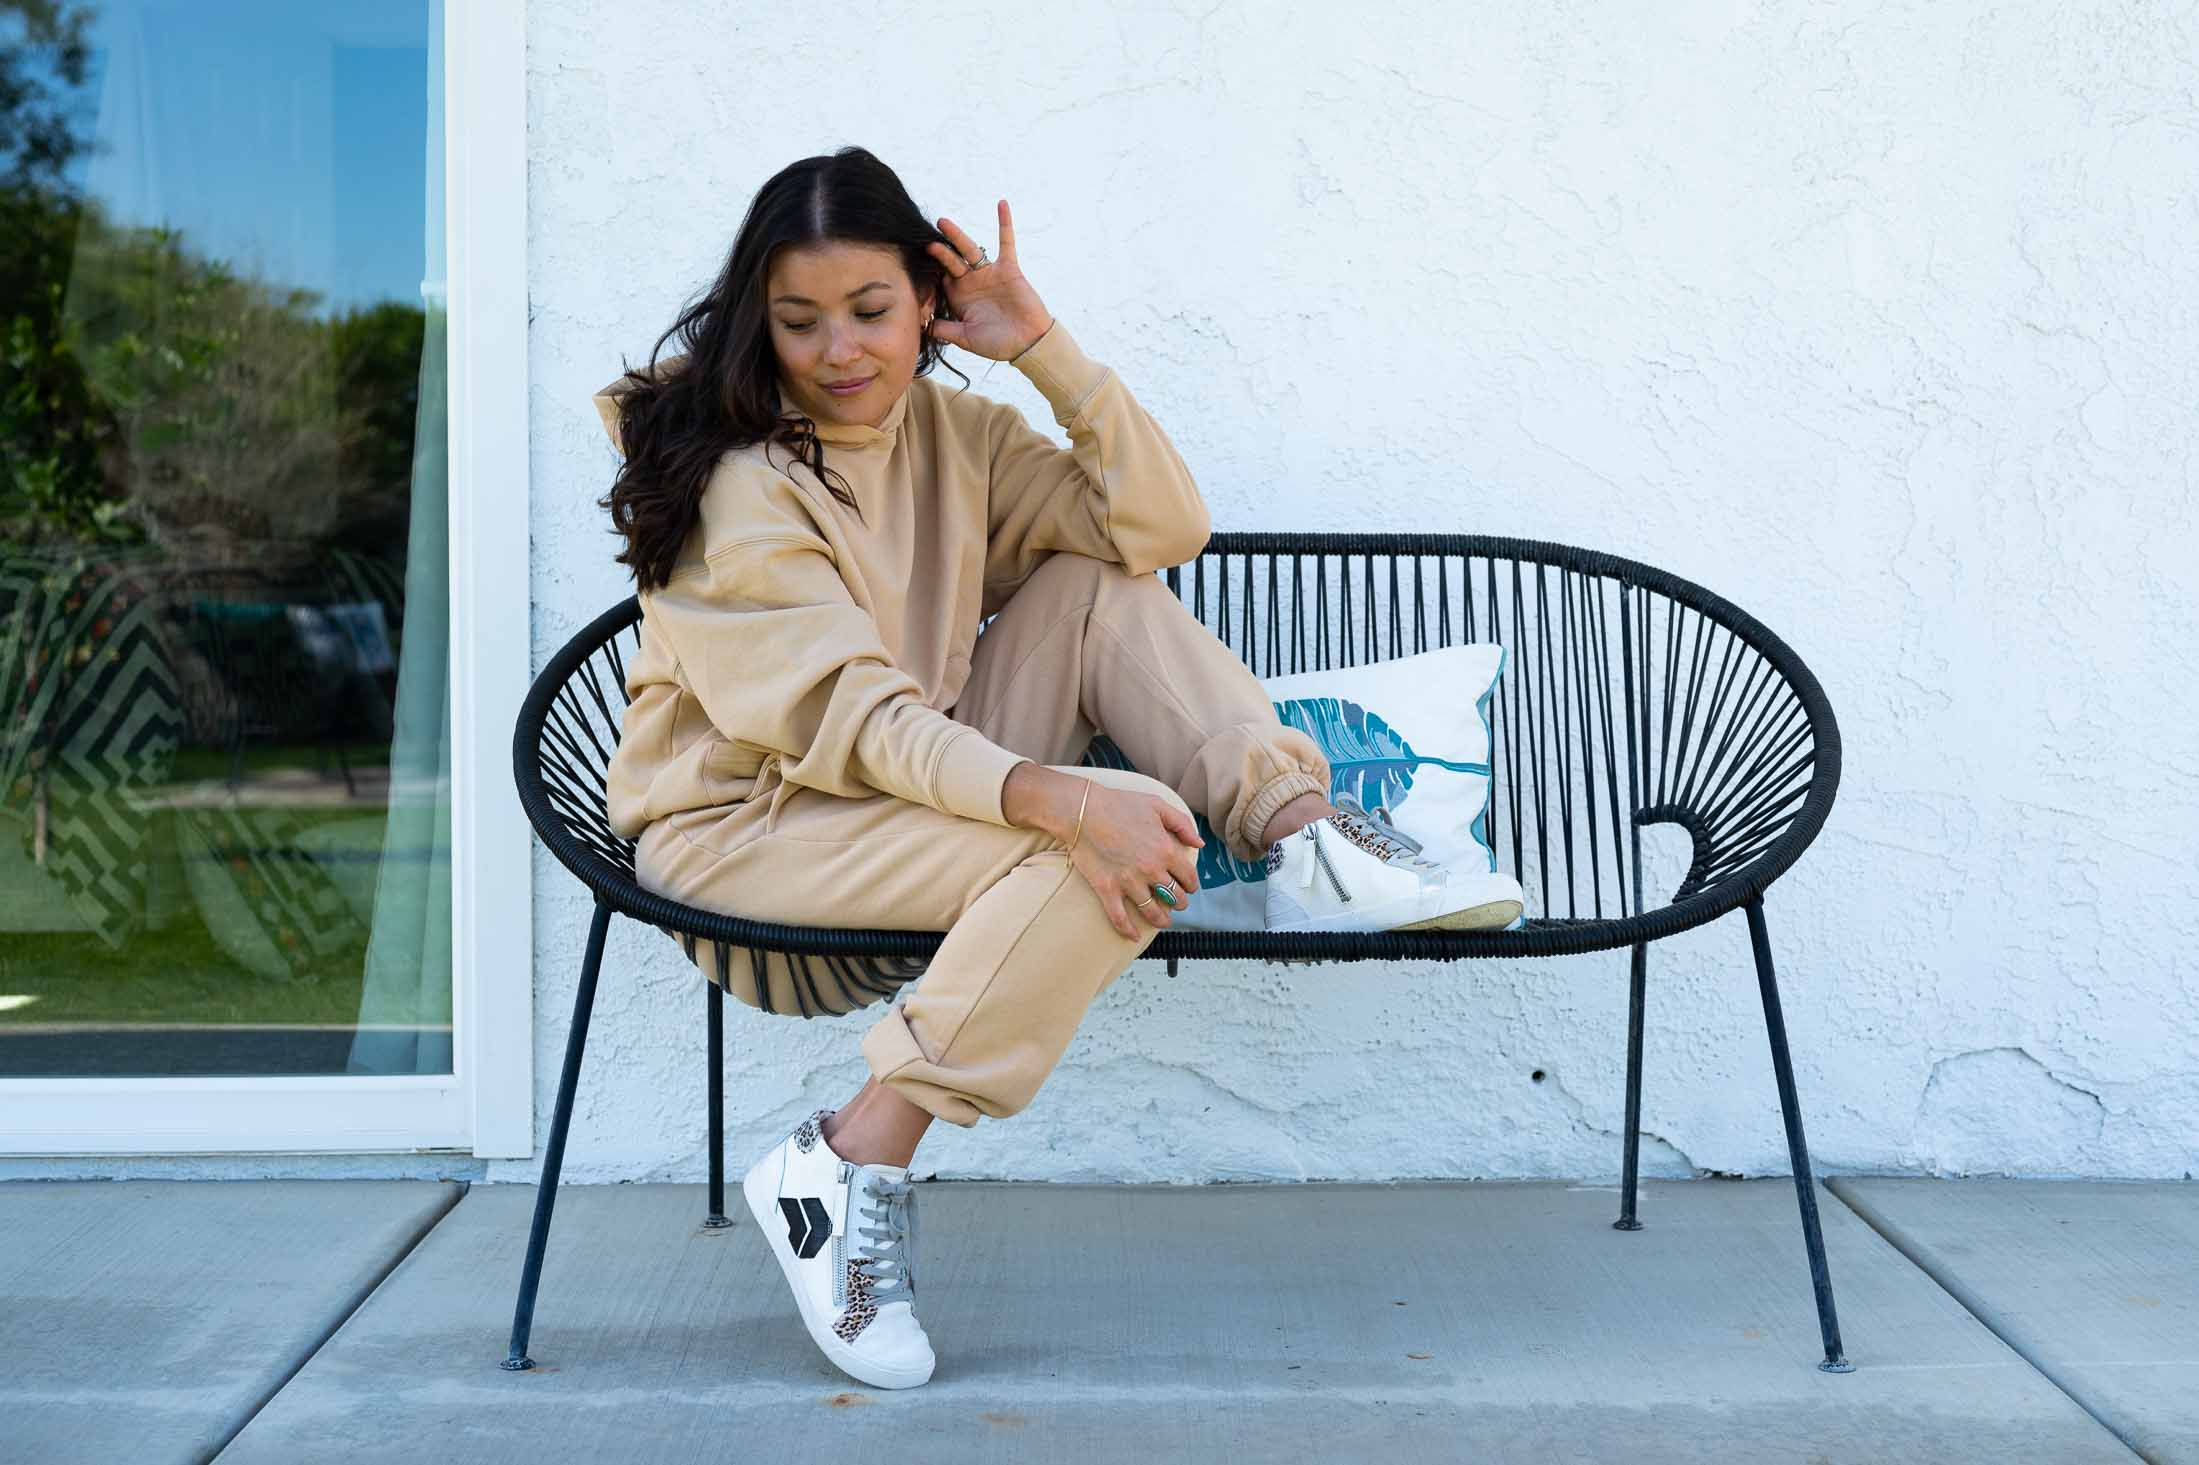 In this day of sweatsuits & house dresses I chose a casual-chic neutral color palette & elevated those sweatsuits + house dresses juuust a little w/ a flash of fine jewelry.